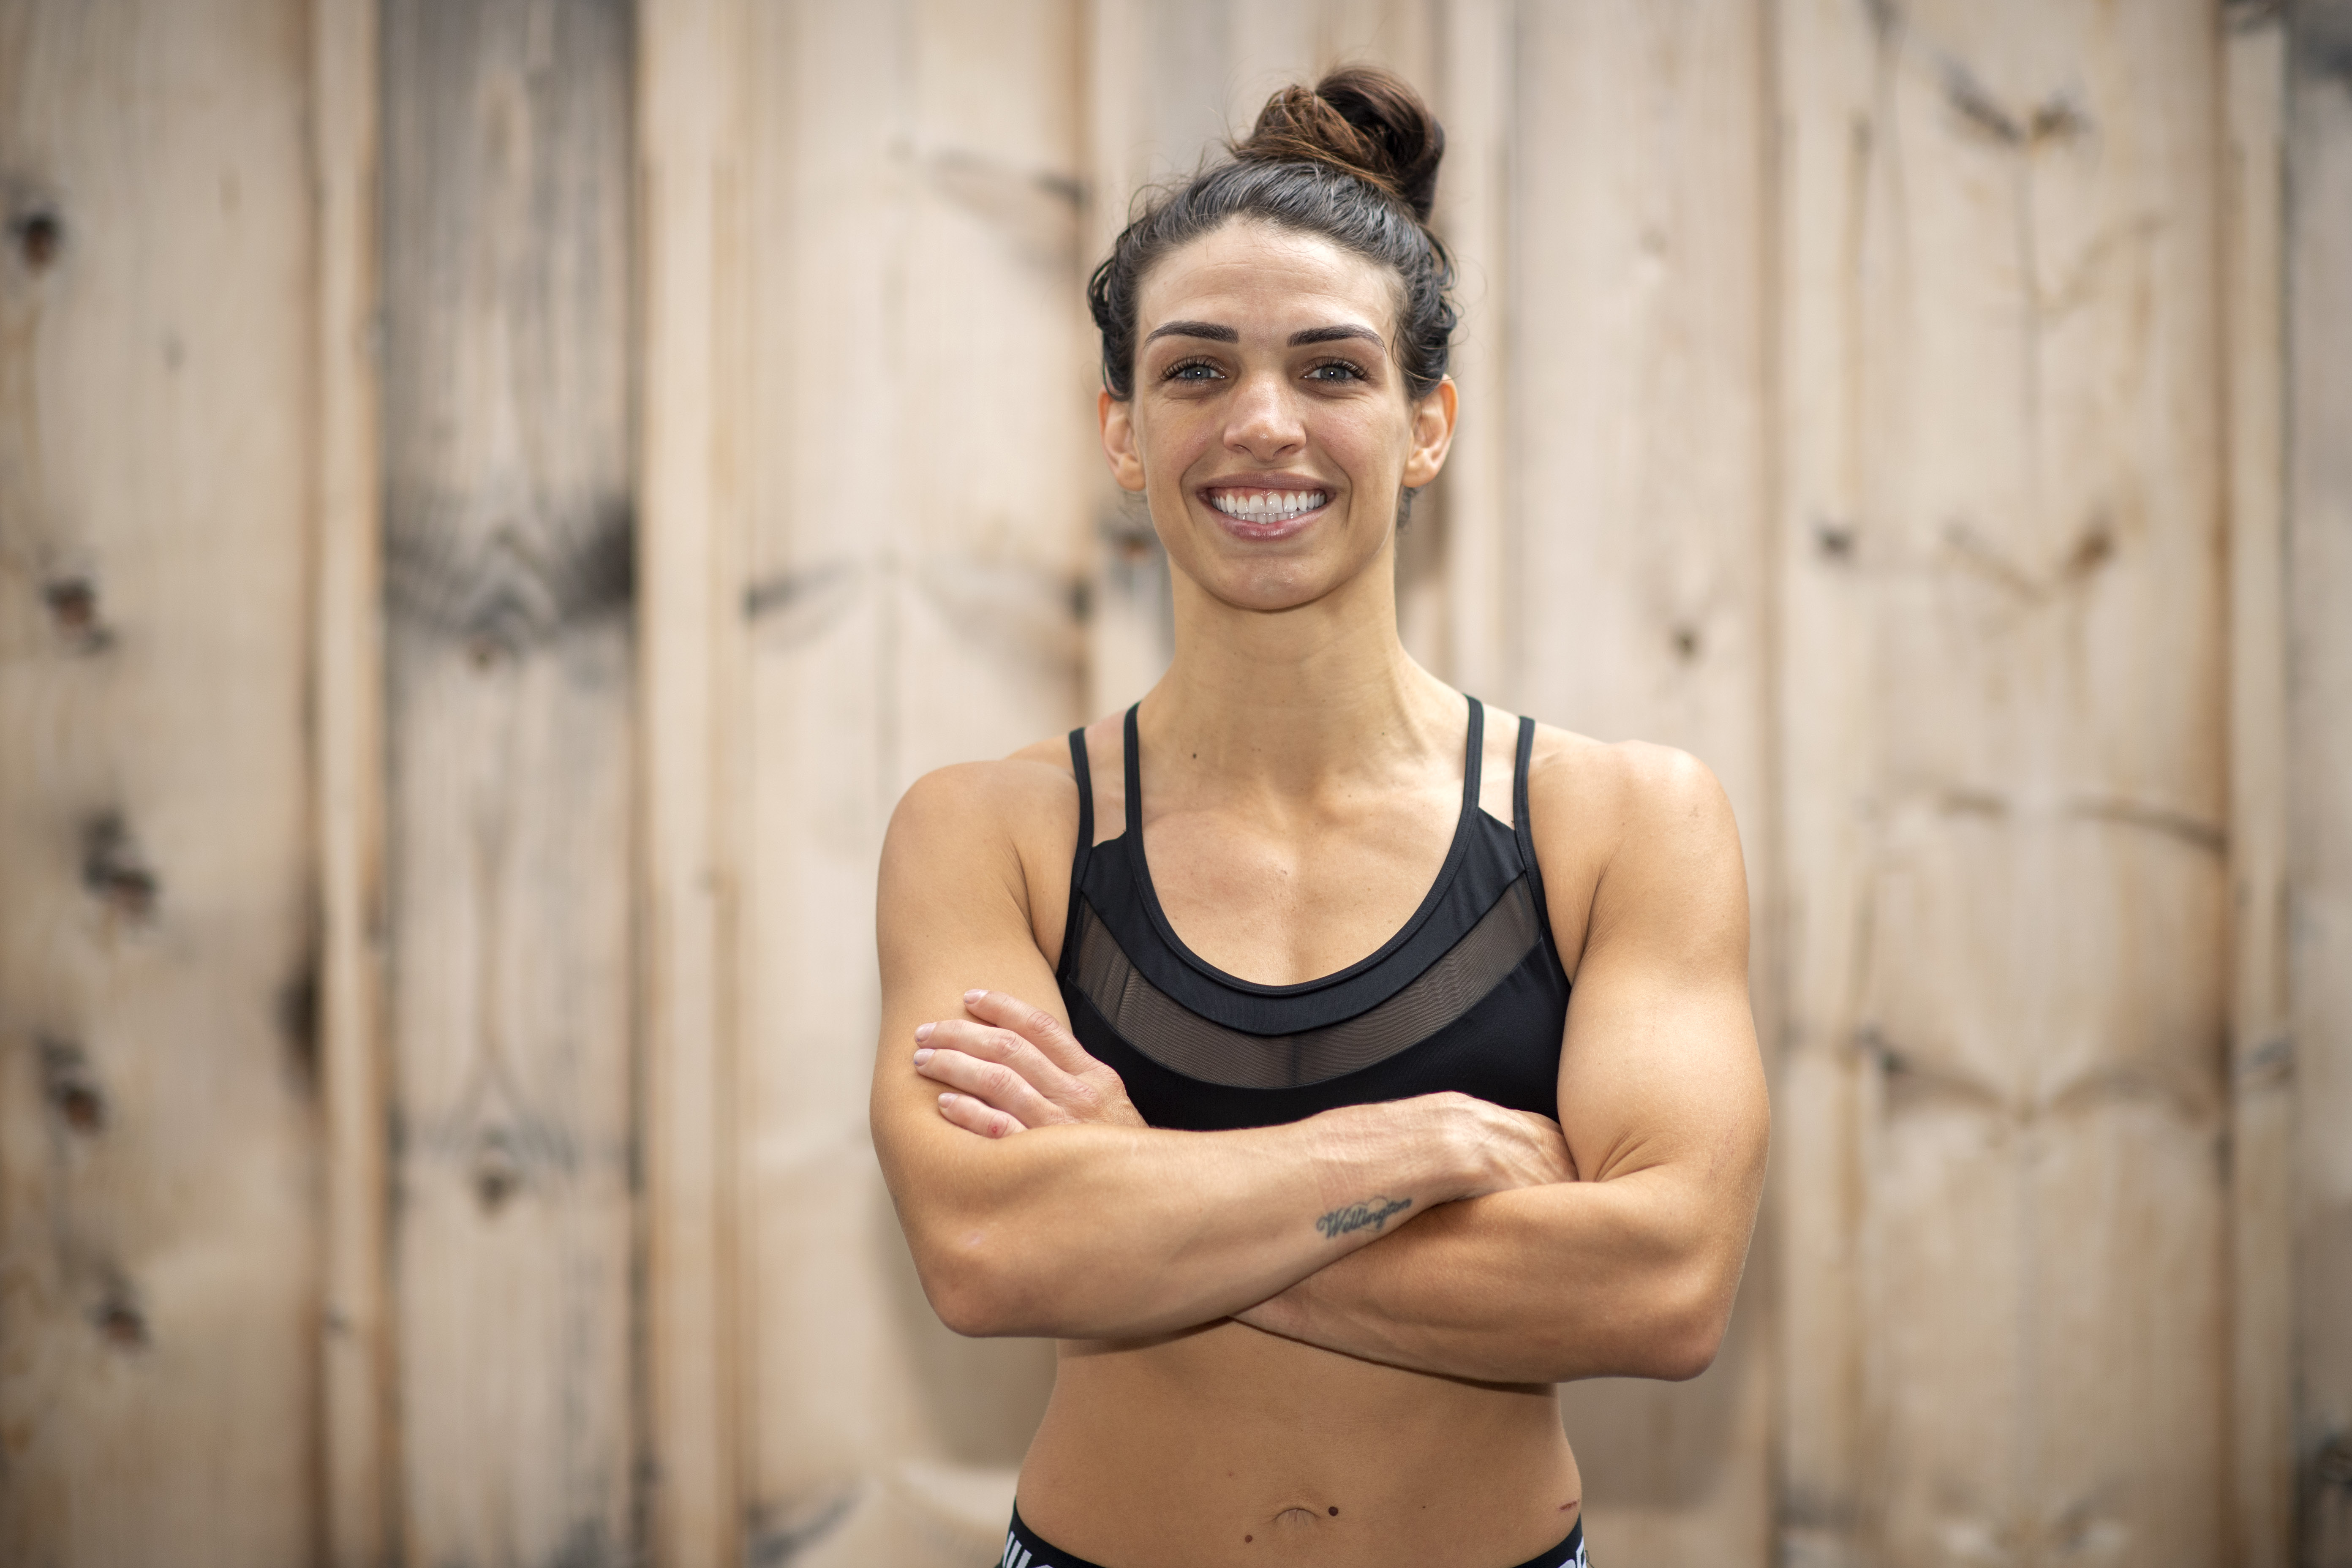 UFC fighter Mackenzie Dern works out at the RVCA Training Center in Costa Mesa